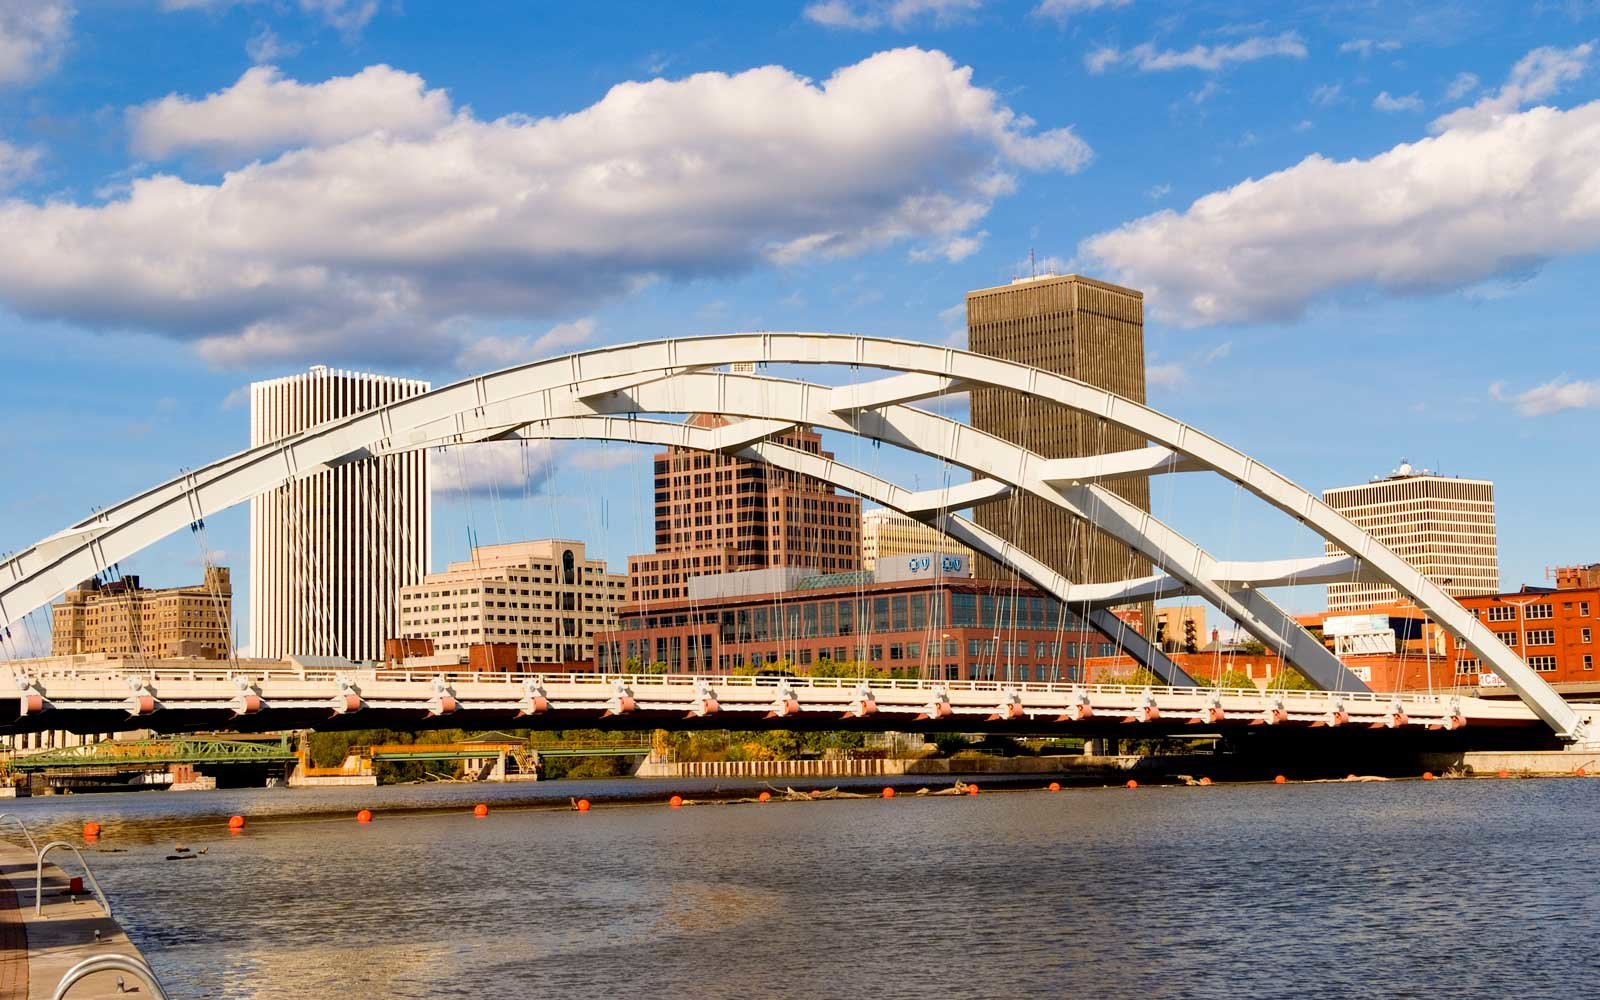 Visit Rochester New York for the Next Eclipse